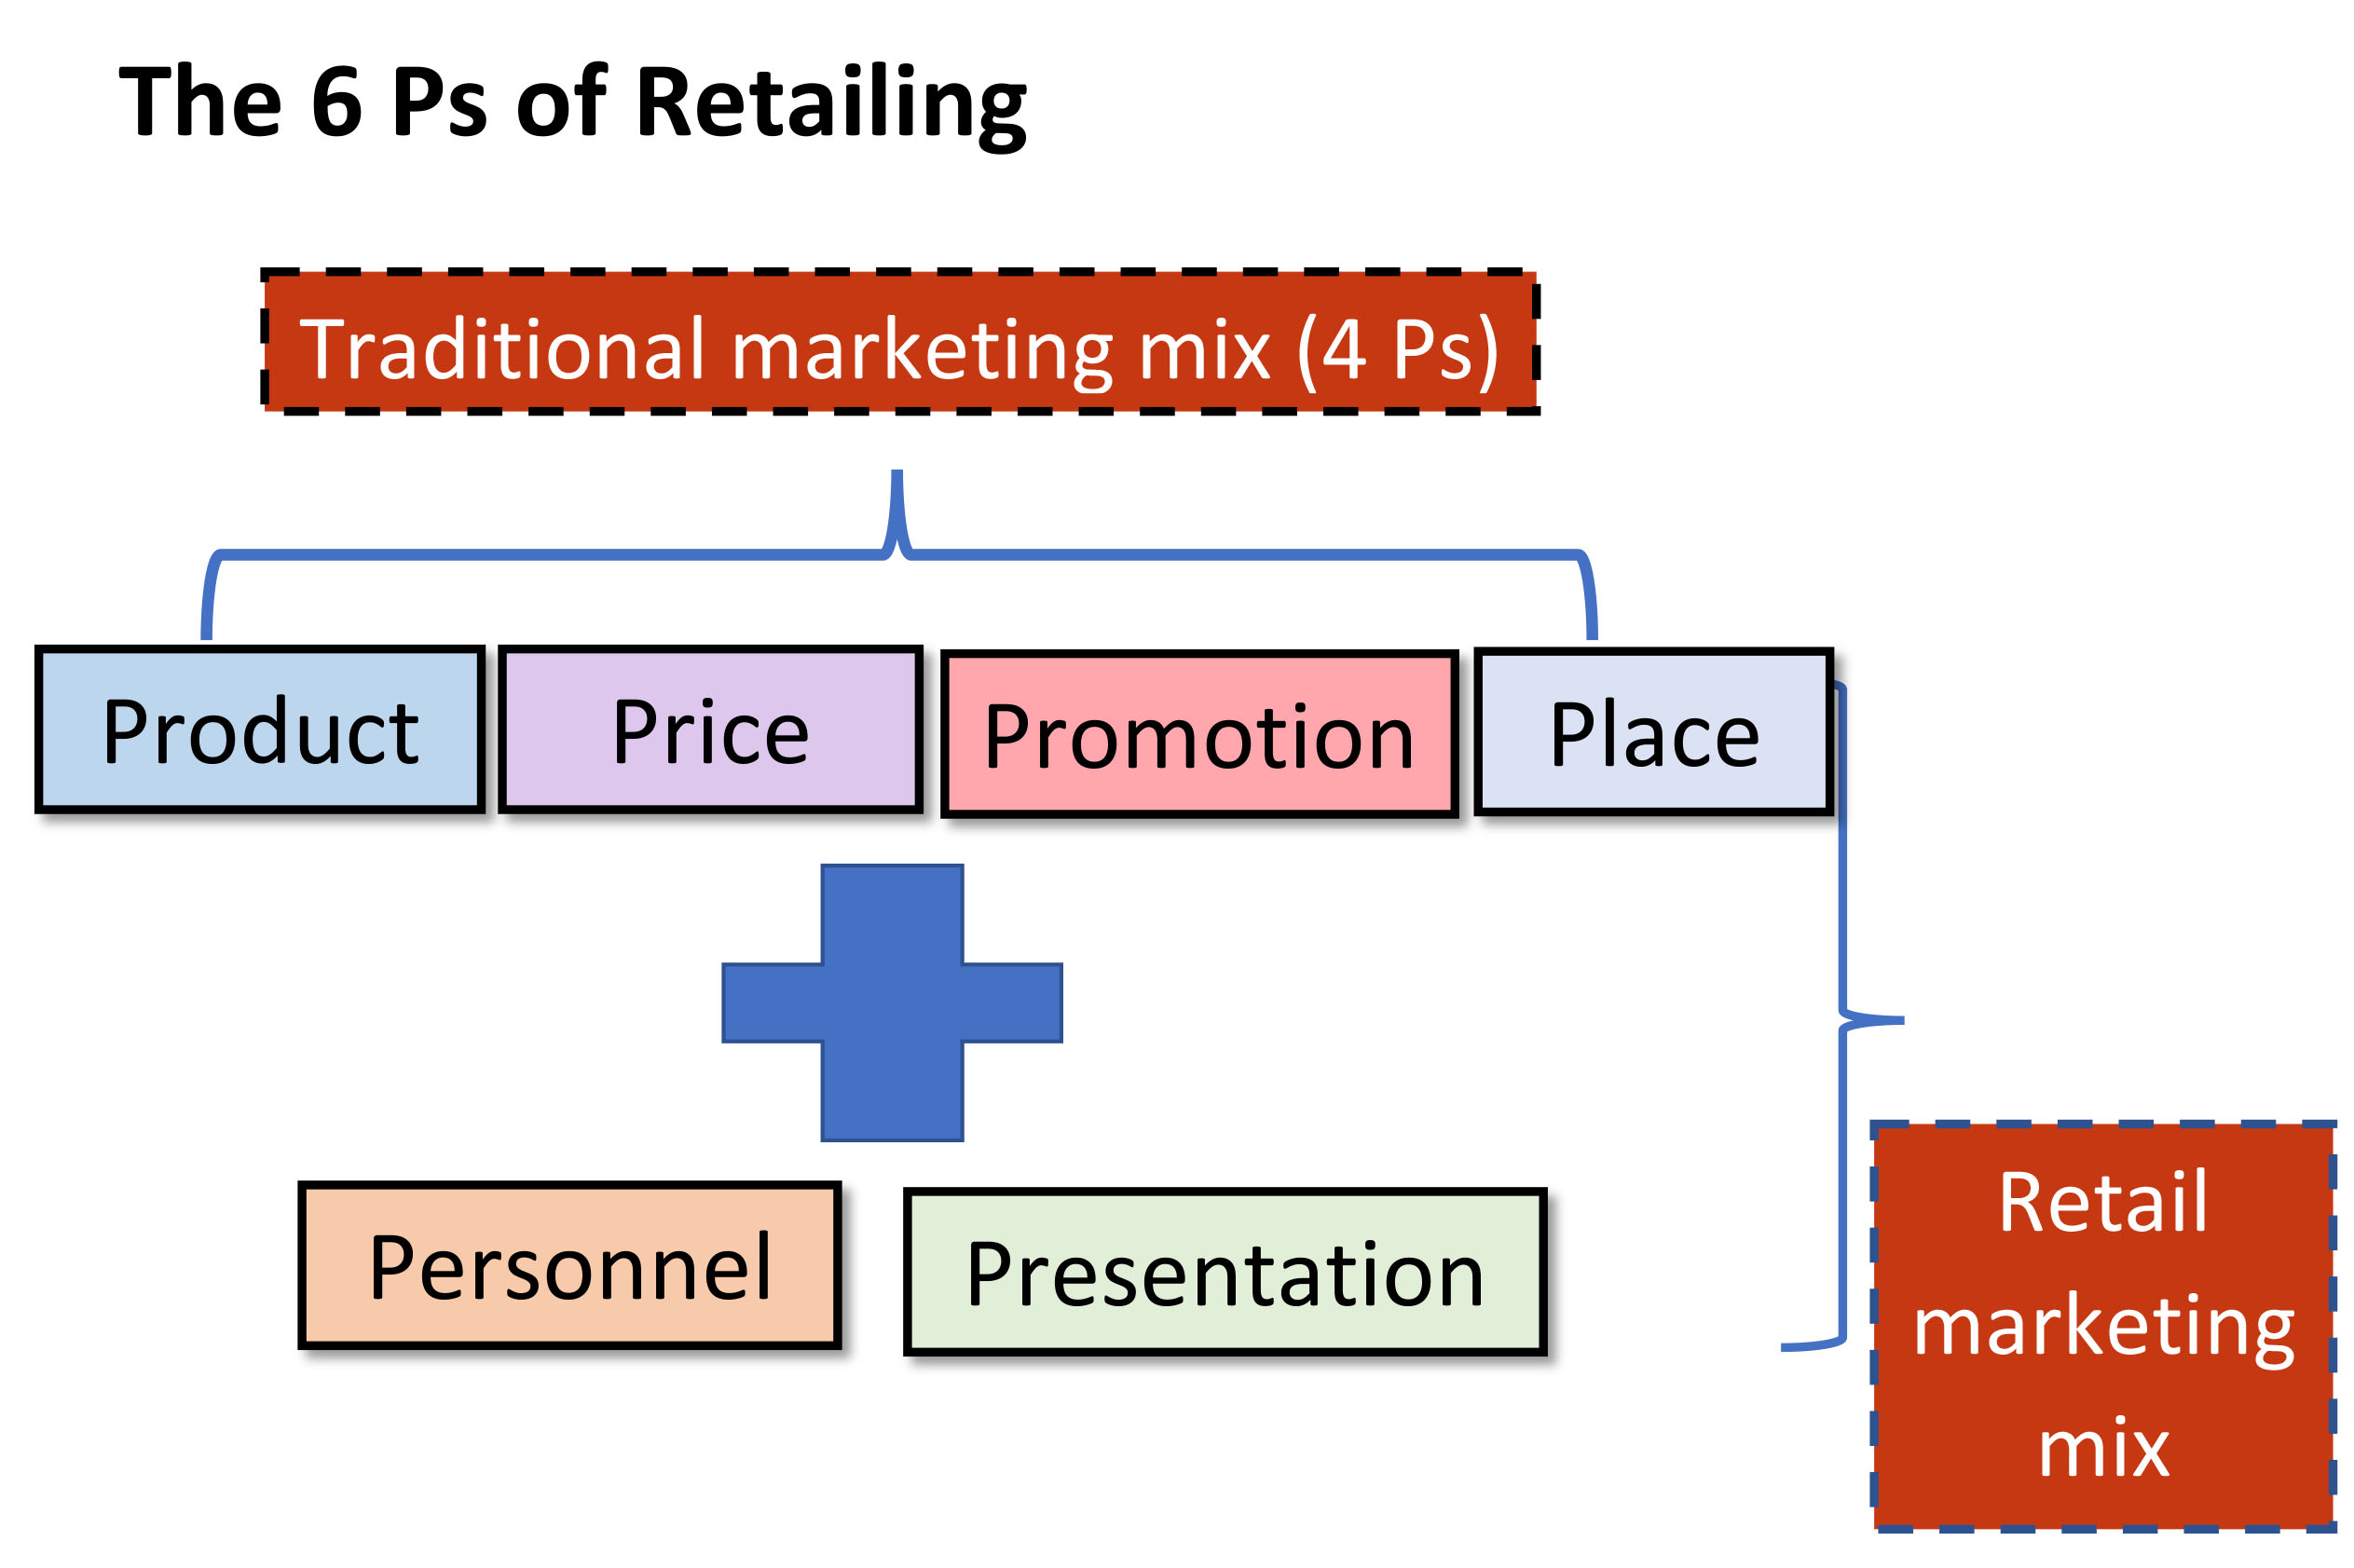 what are the six components of best buys retailing mix